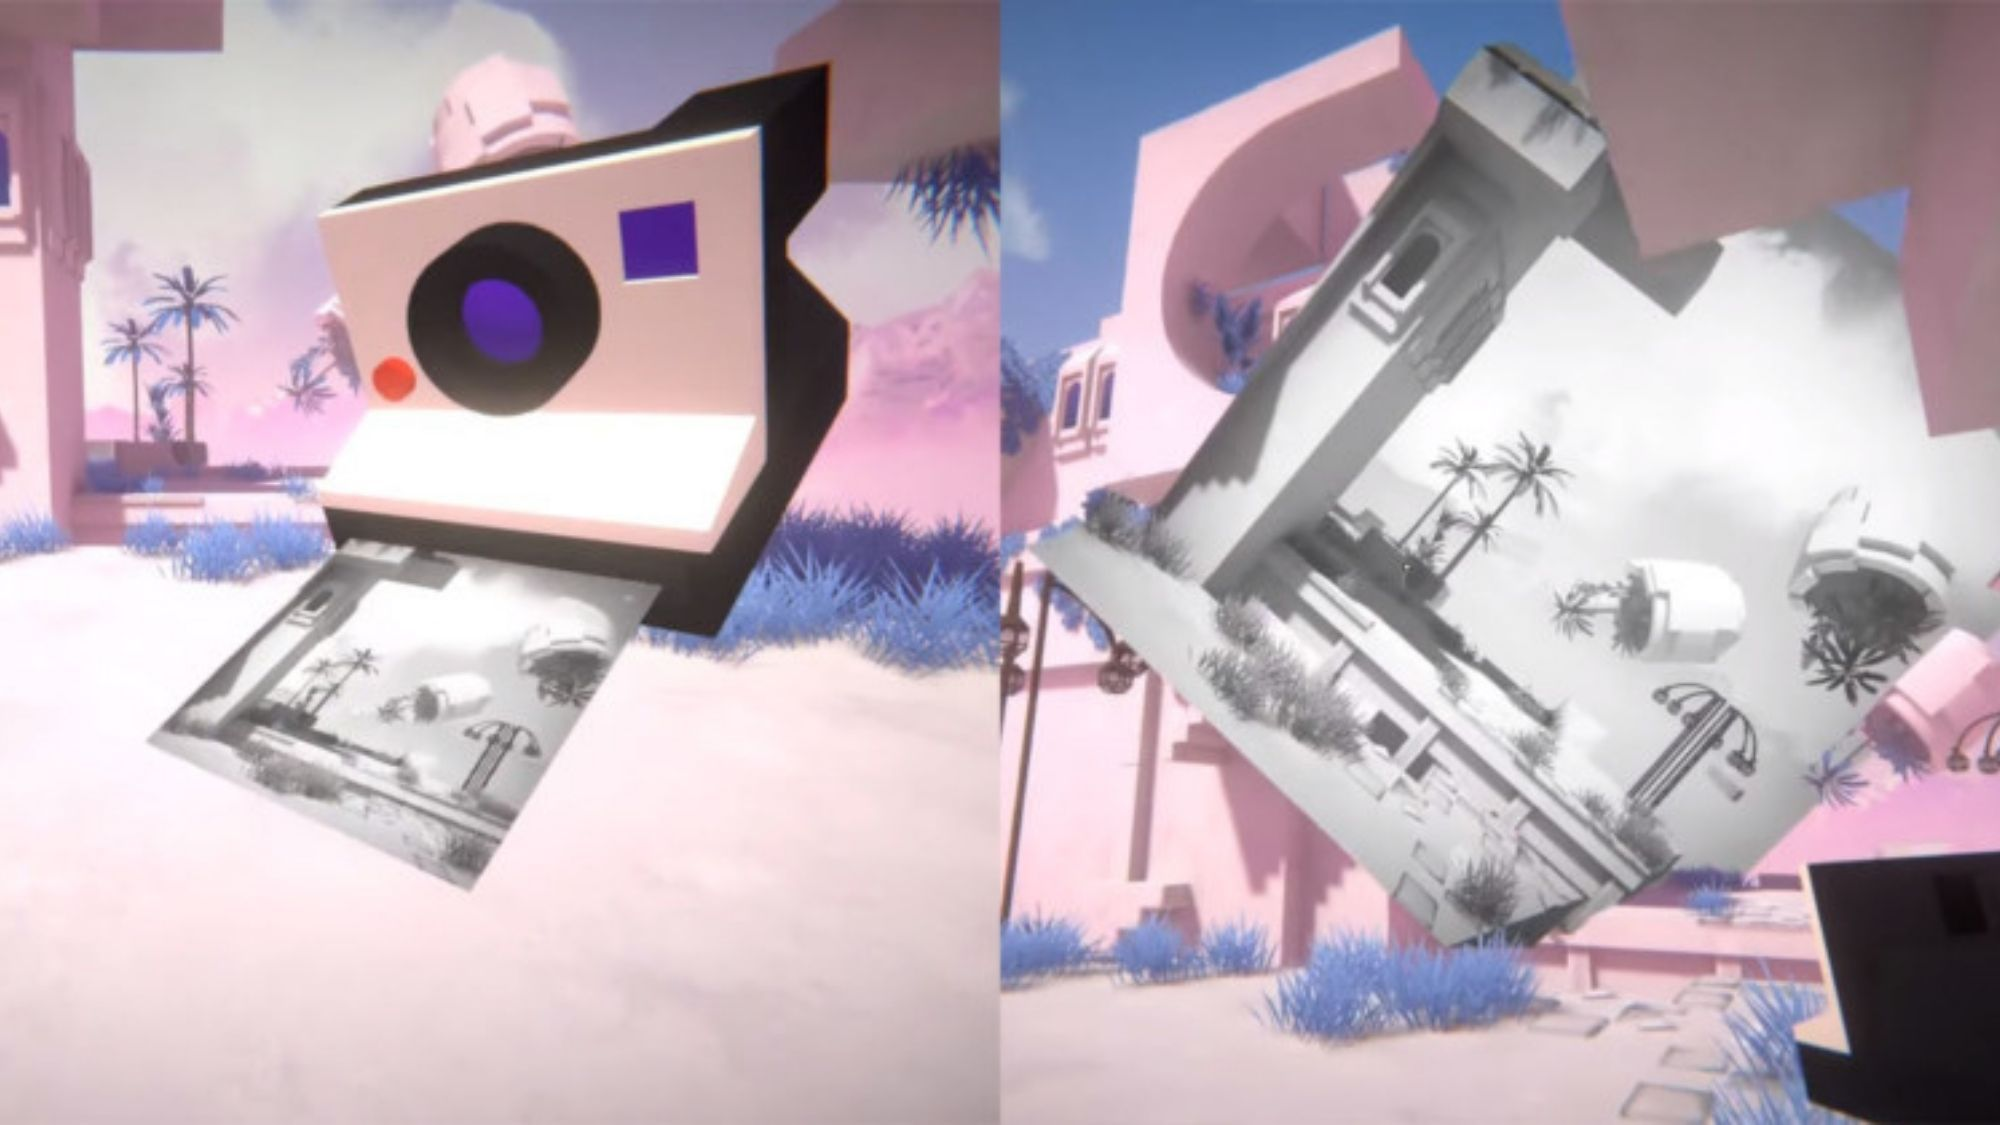 Viewfinder to use photos from instant camera for 3D puzzle environment